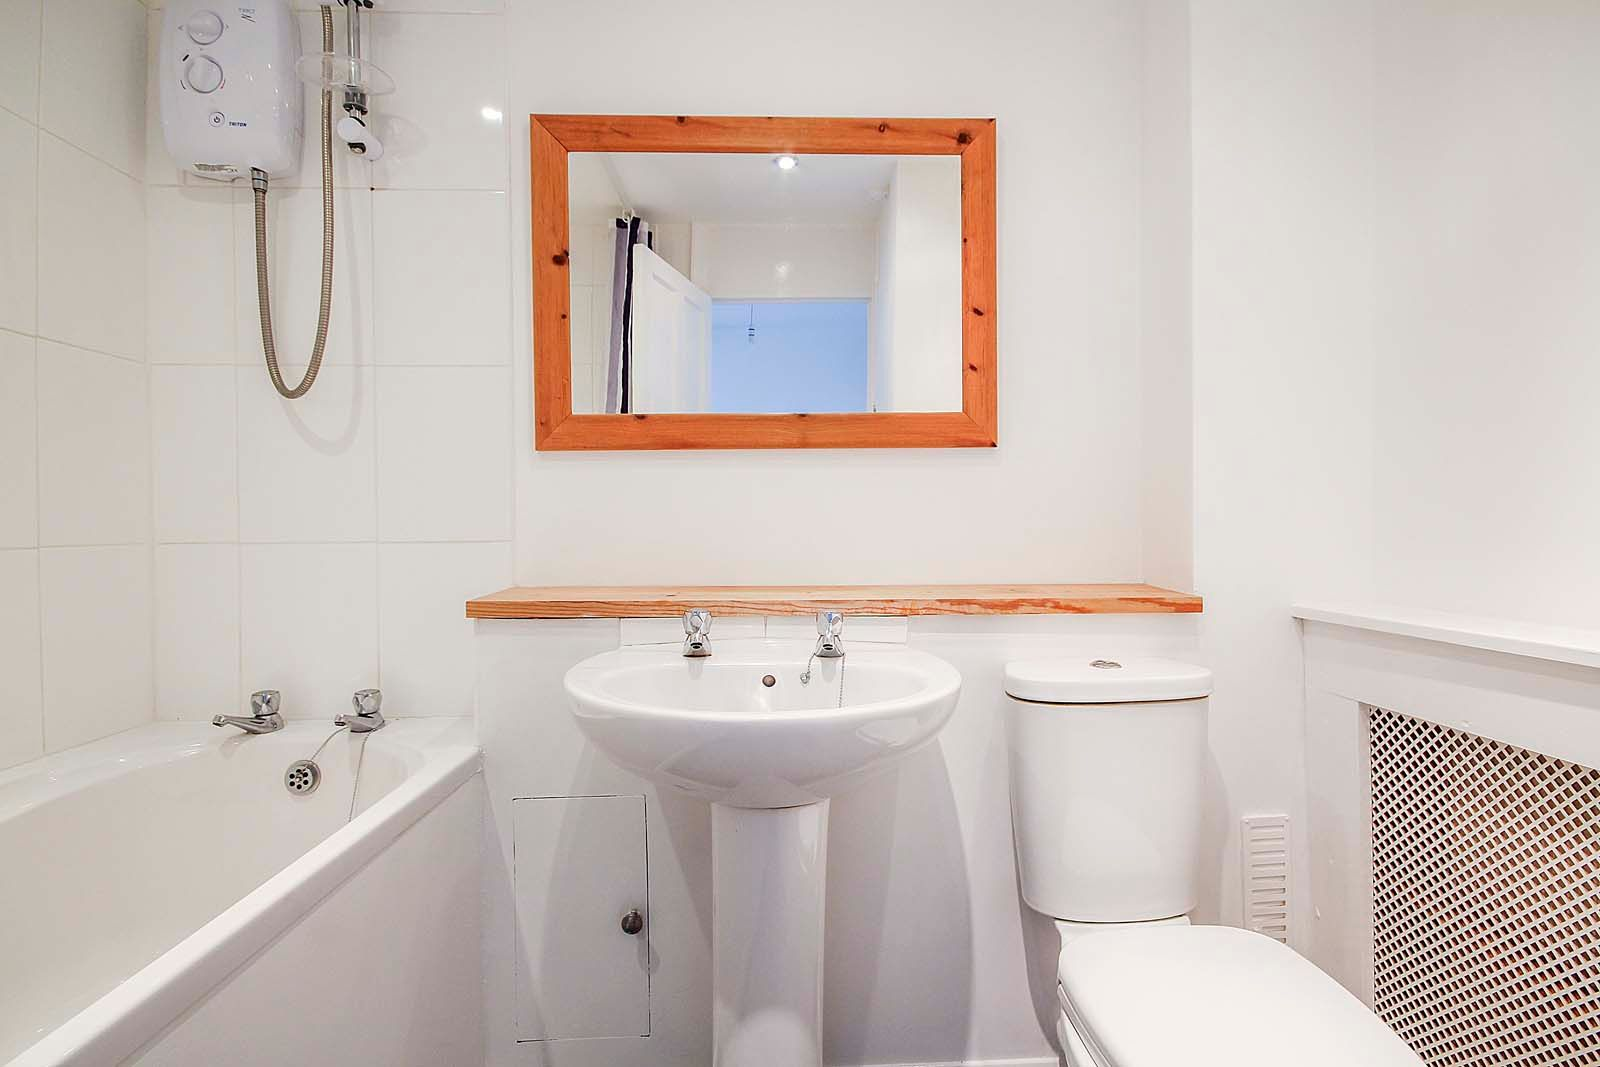 2 bed house for sale in Church Way COMP Jan 2019  - Property Image 9